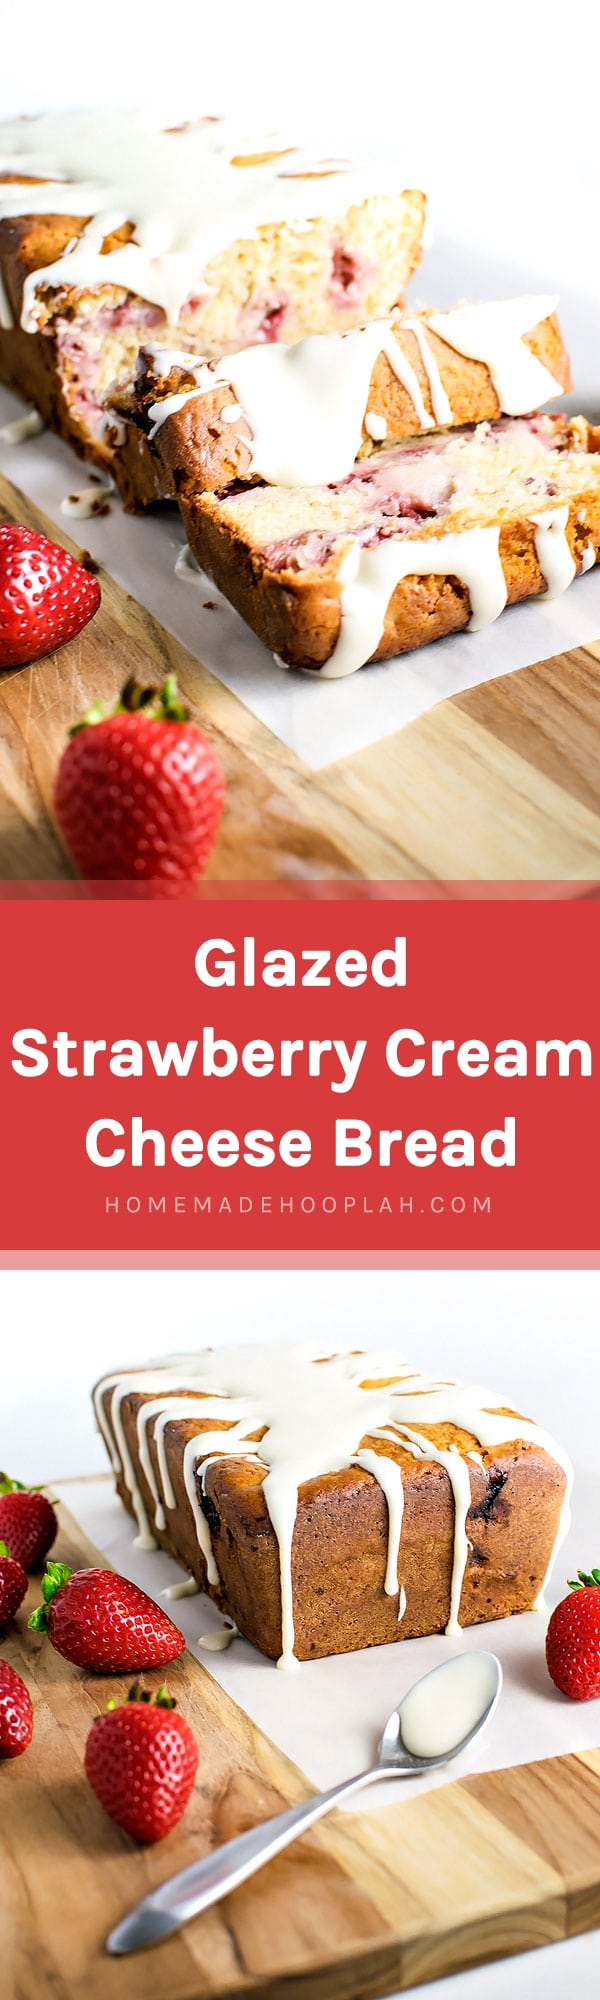 Glazed Strawberry Cream Cheese Bread! A cake-like bread stuffed with fresh strawberries, a pinch of cinnamon, and covered in a vanilla frosting glaze. | HomeameHooplah.com